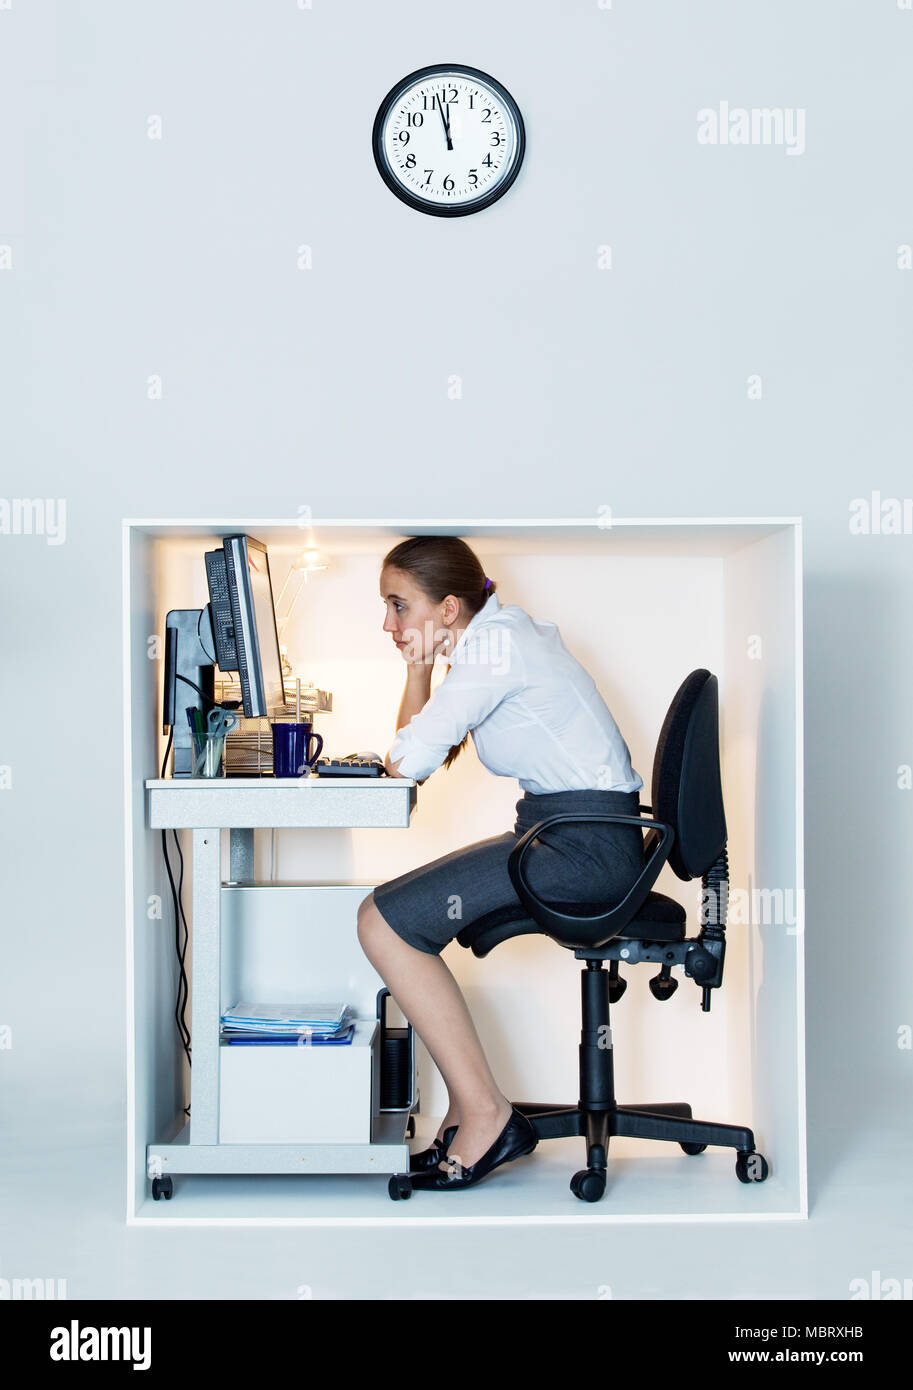 Woman Working In Tiny Office Cubicle